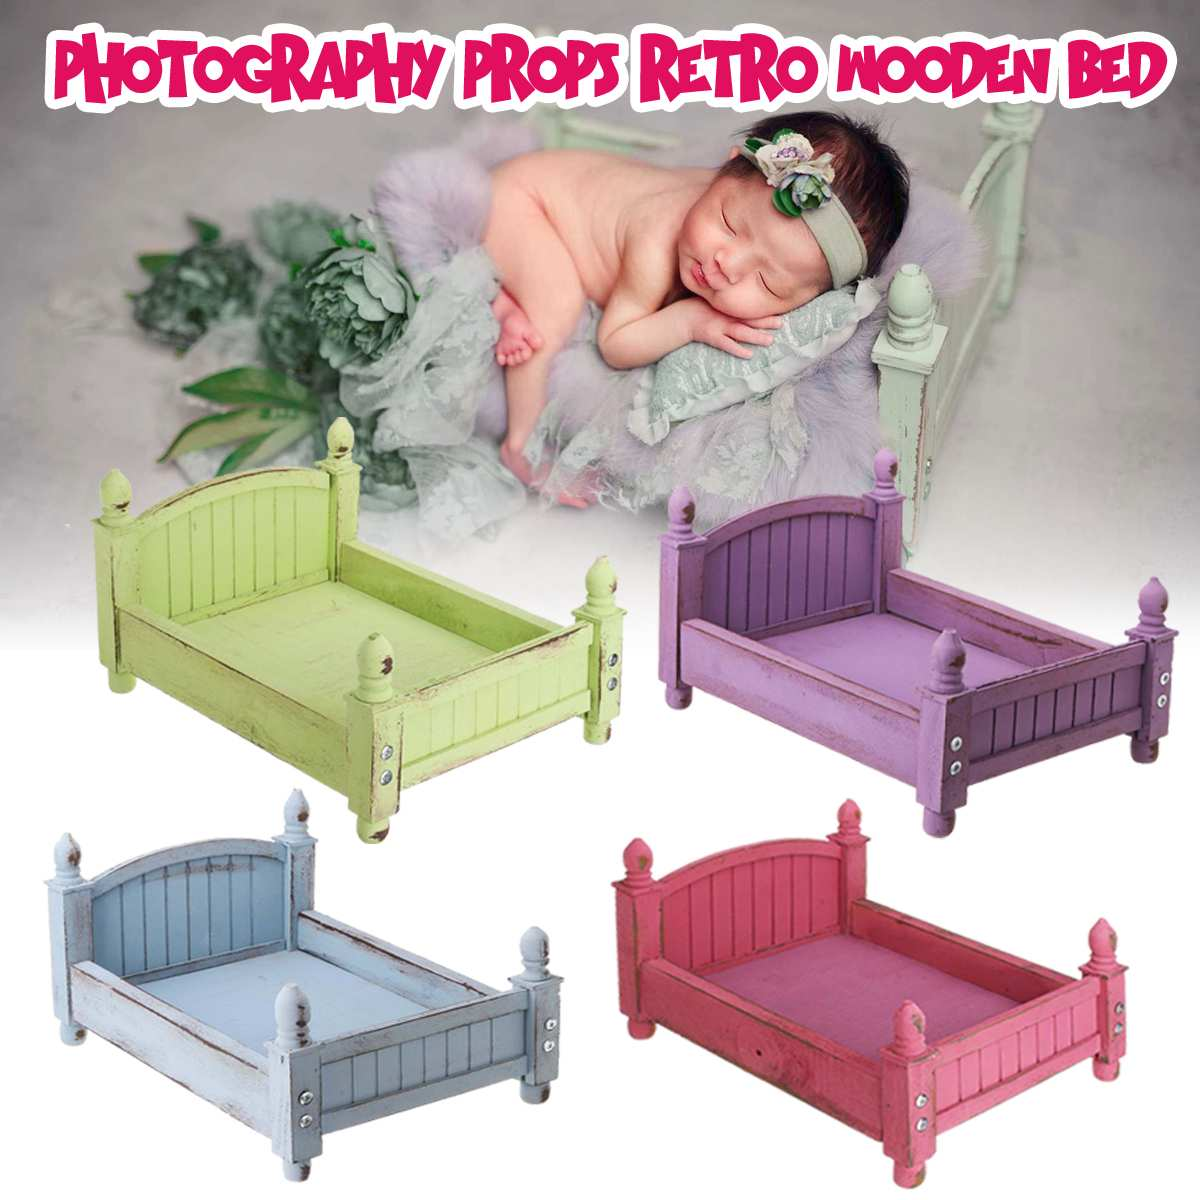 Bioby 4 Colors Bed Baby Studio Photography Background Cribs Newborn Photography Shoot Props Retro Wooden Photo Shoot Posing Sofa